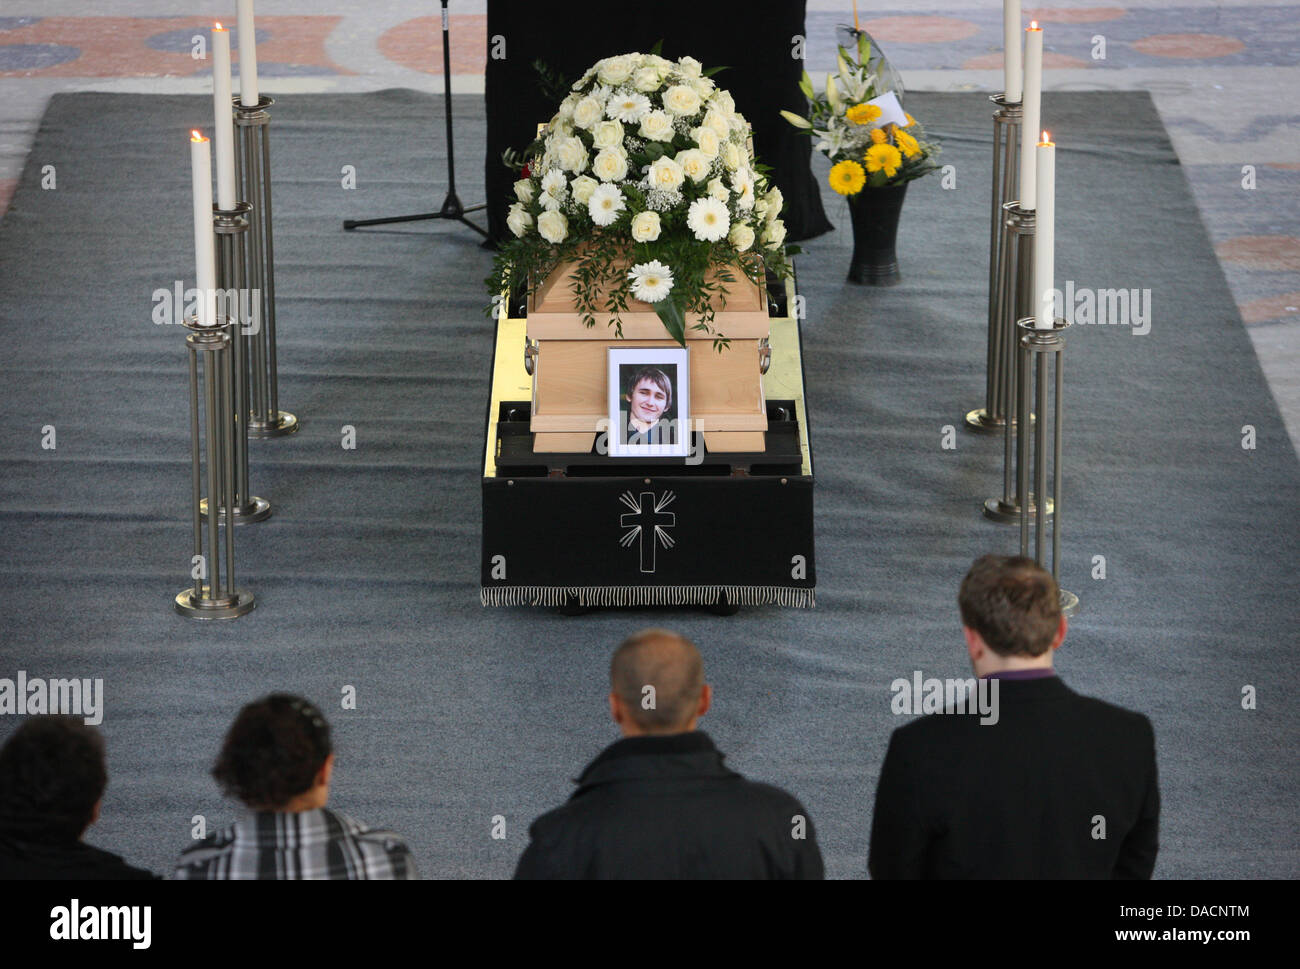 Friends and relatives of RobertDietrich stand at his coffin during his funeral at the Ice Stadium in Kaubeuren, - Stock Image